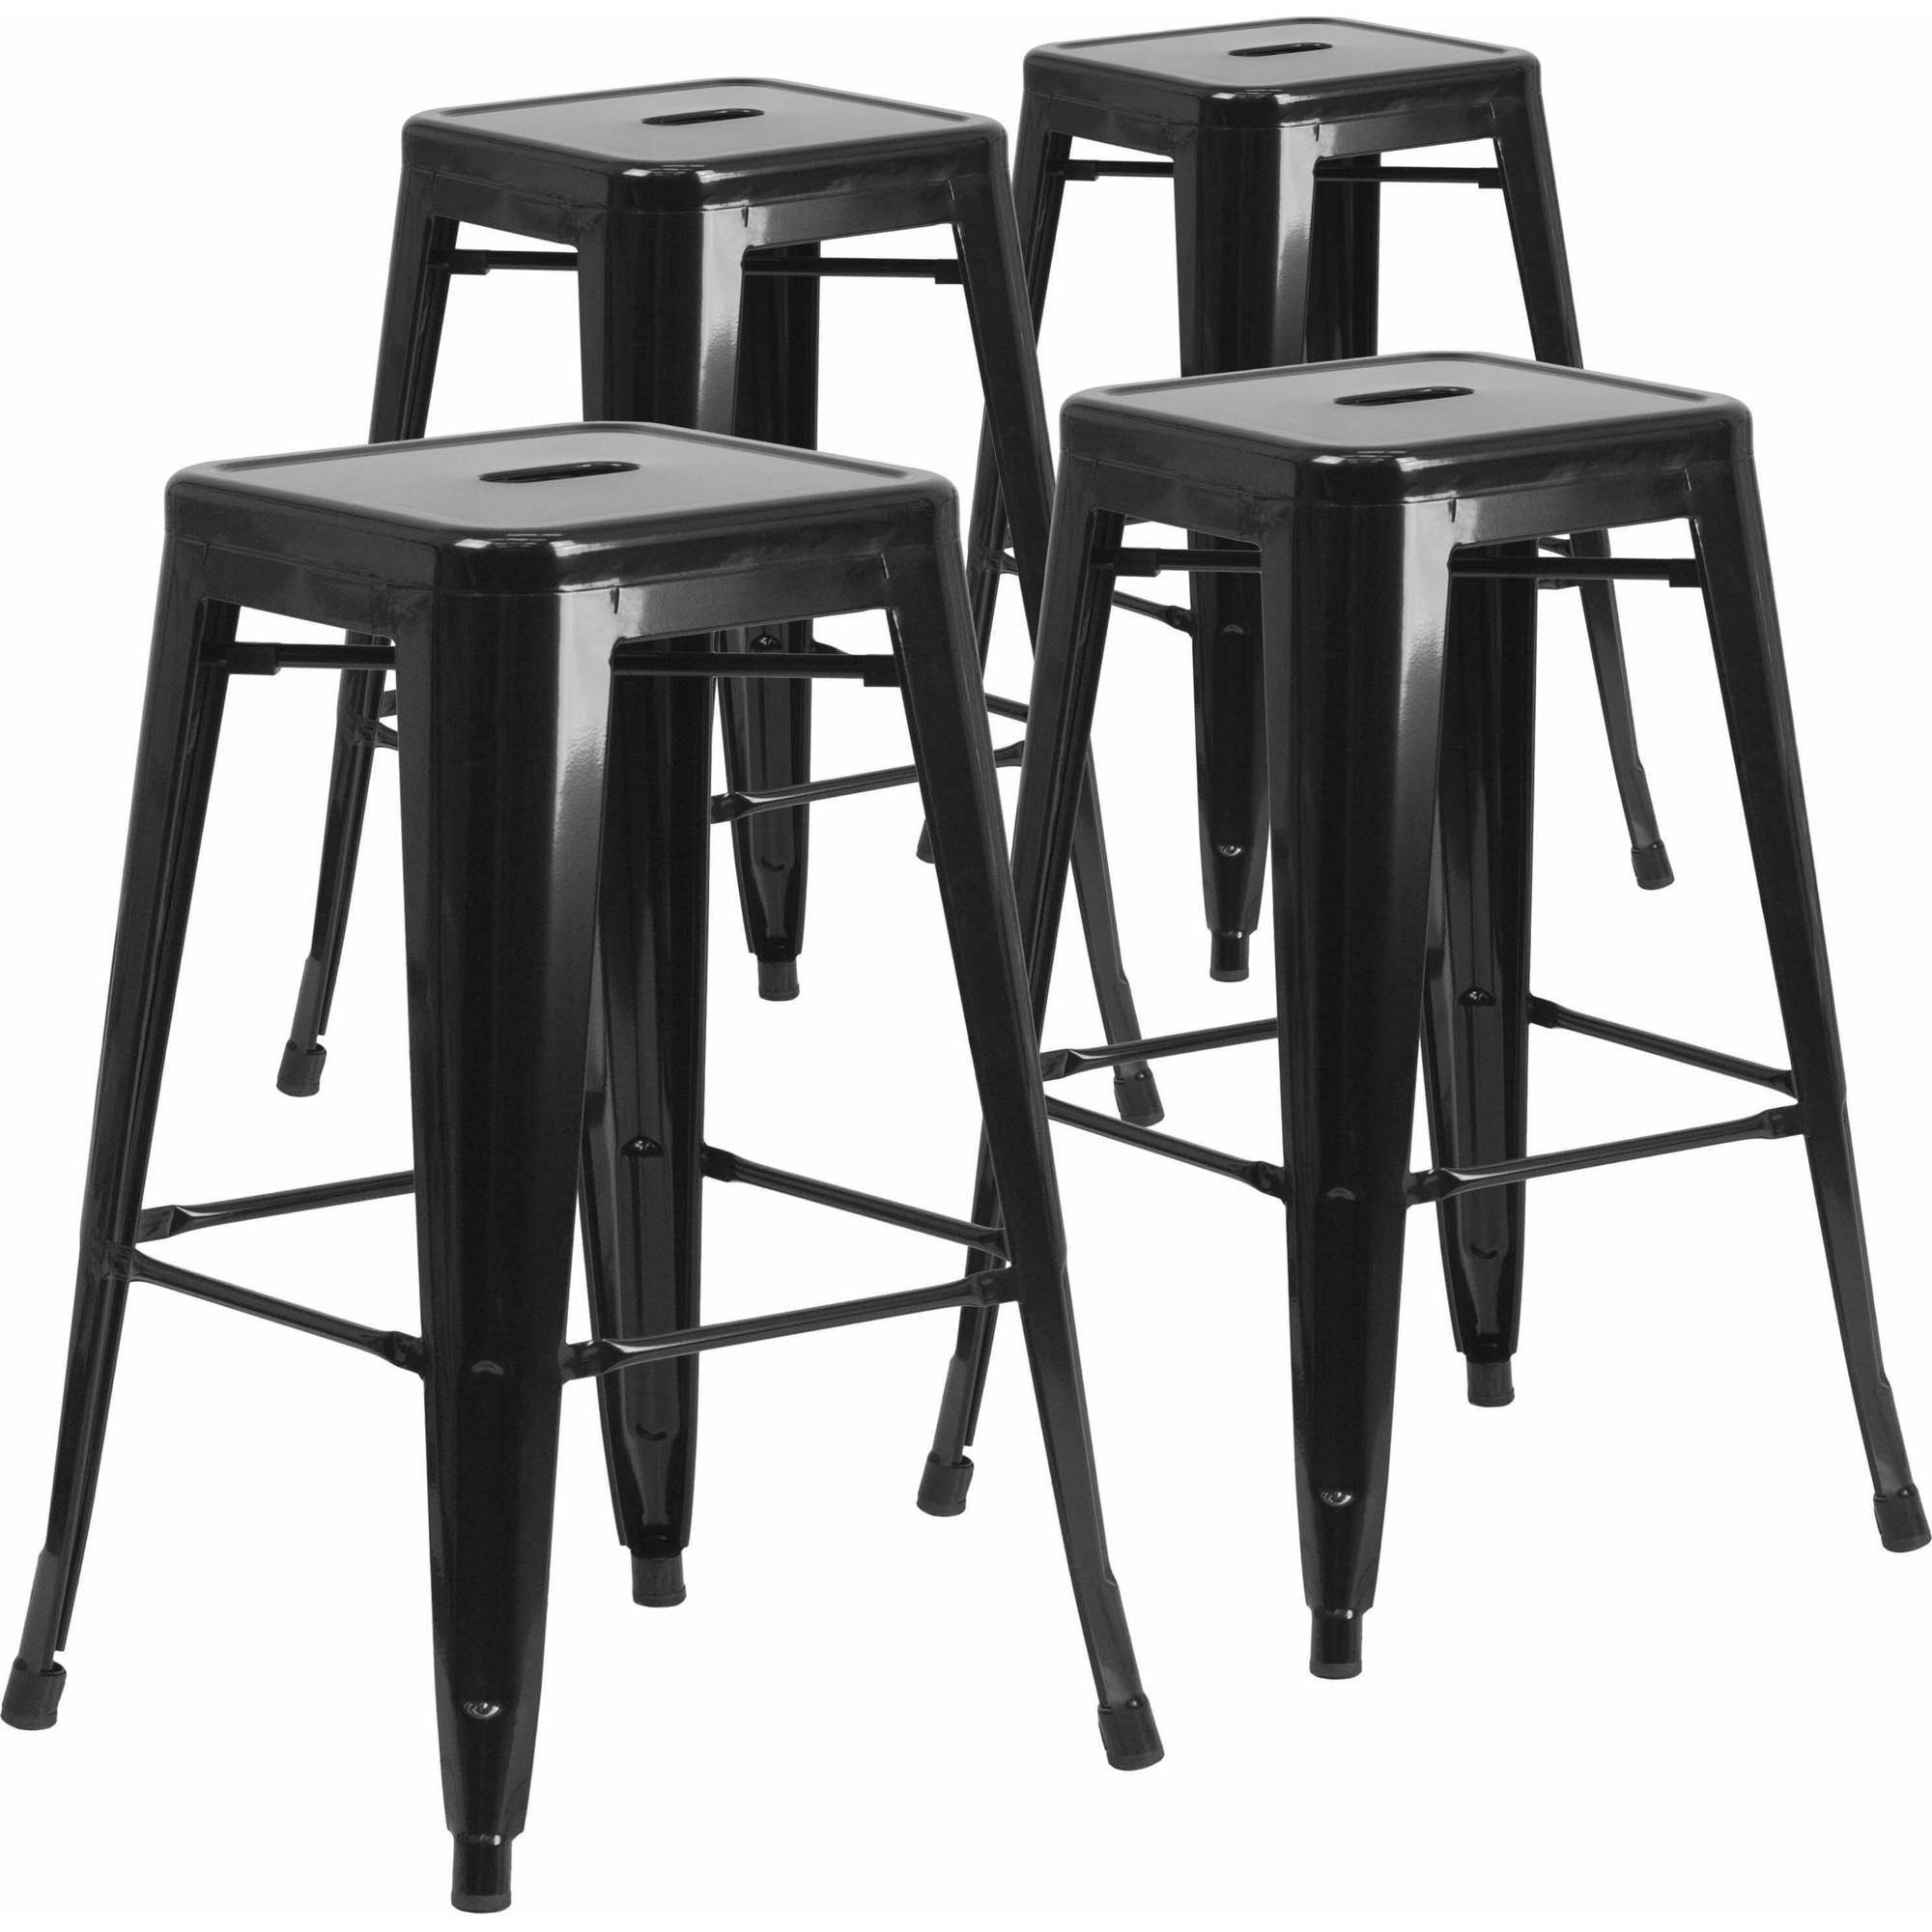 "Flash Furniture 30"" High Backless Metal Indoor-Outdoor Barstool with Square Seat, 4 Pack, Multiple Colors"